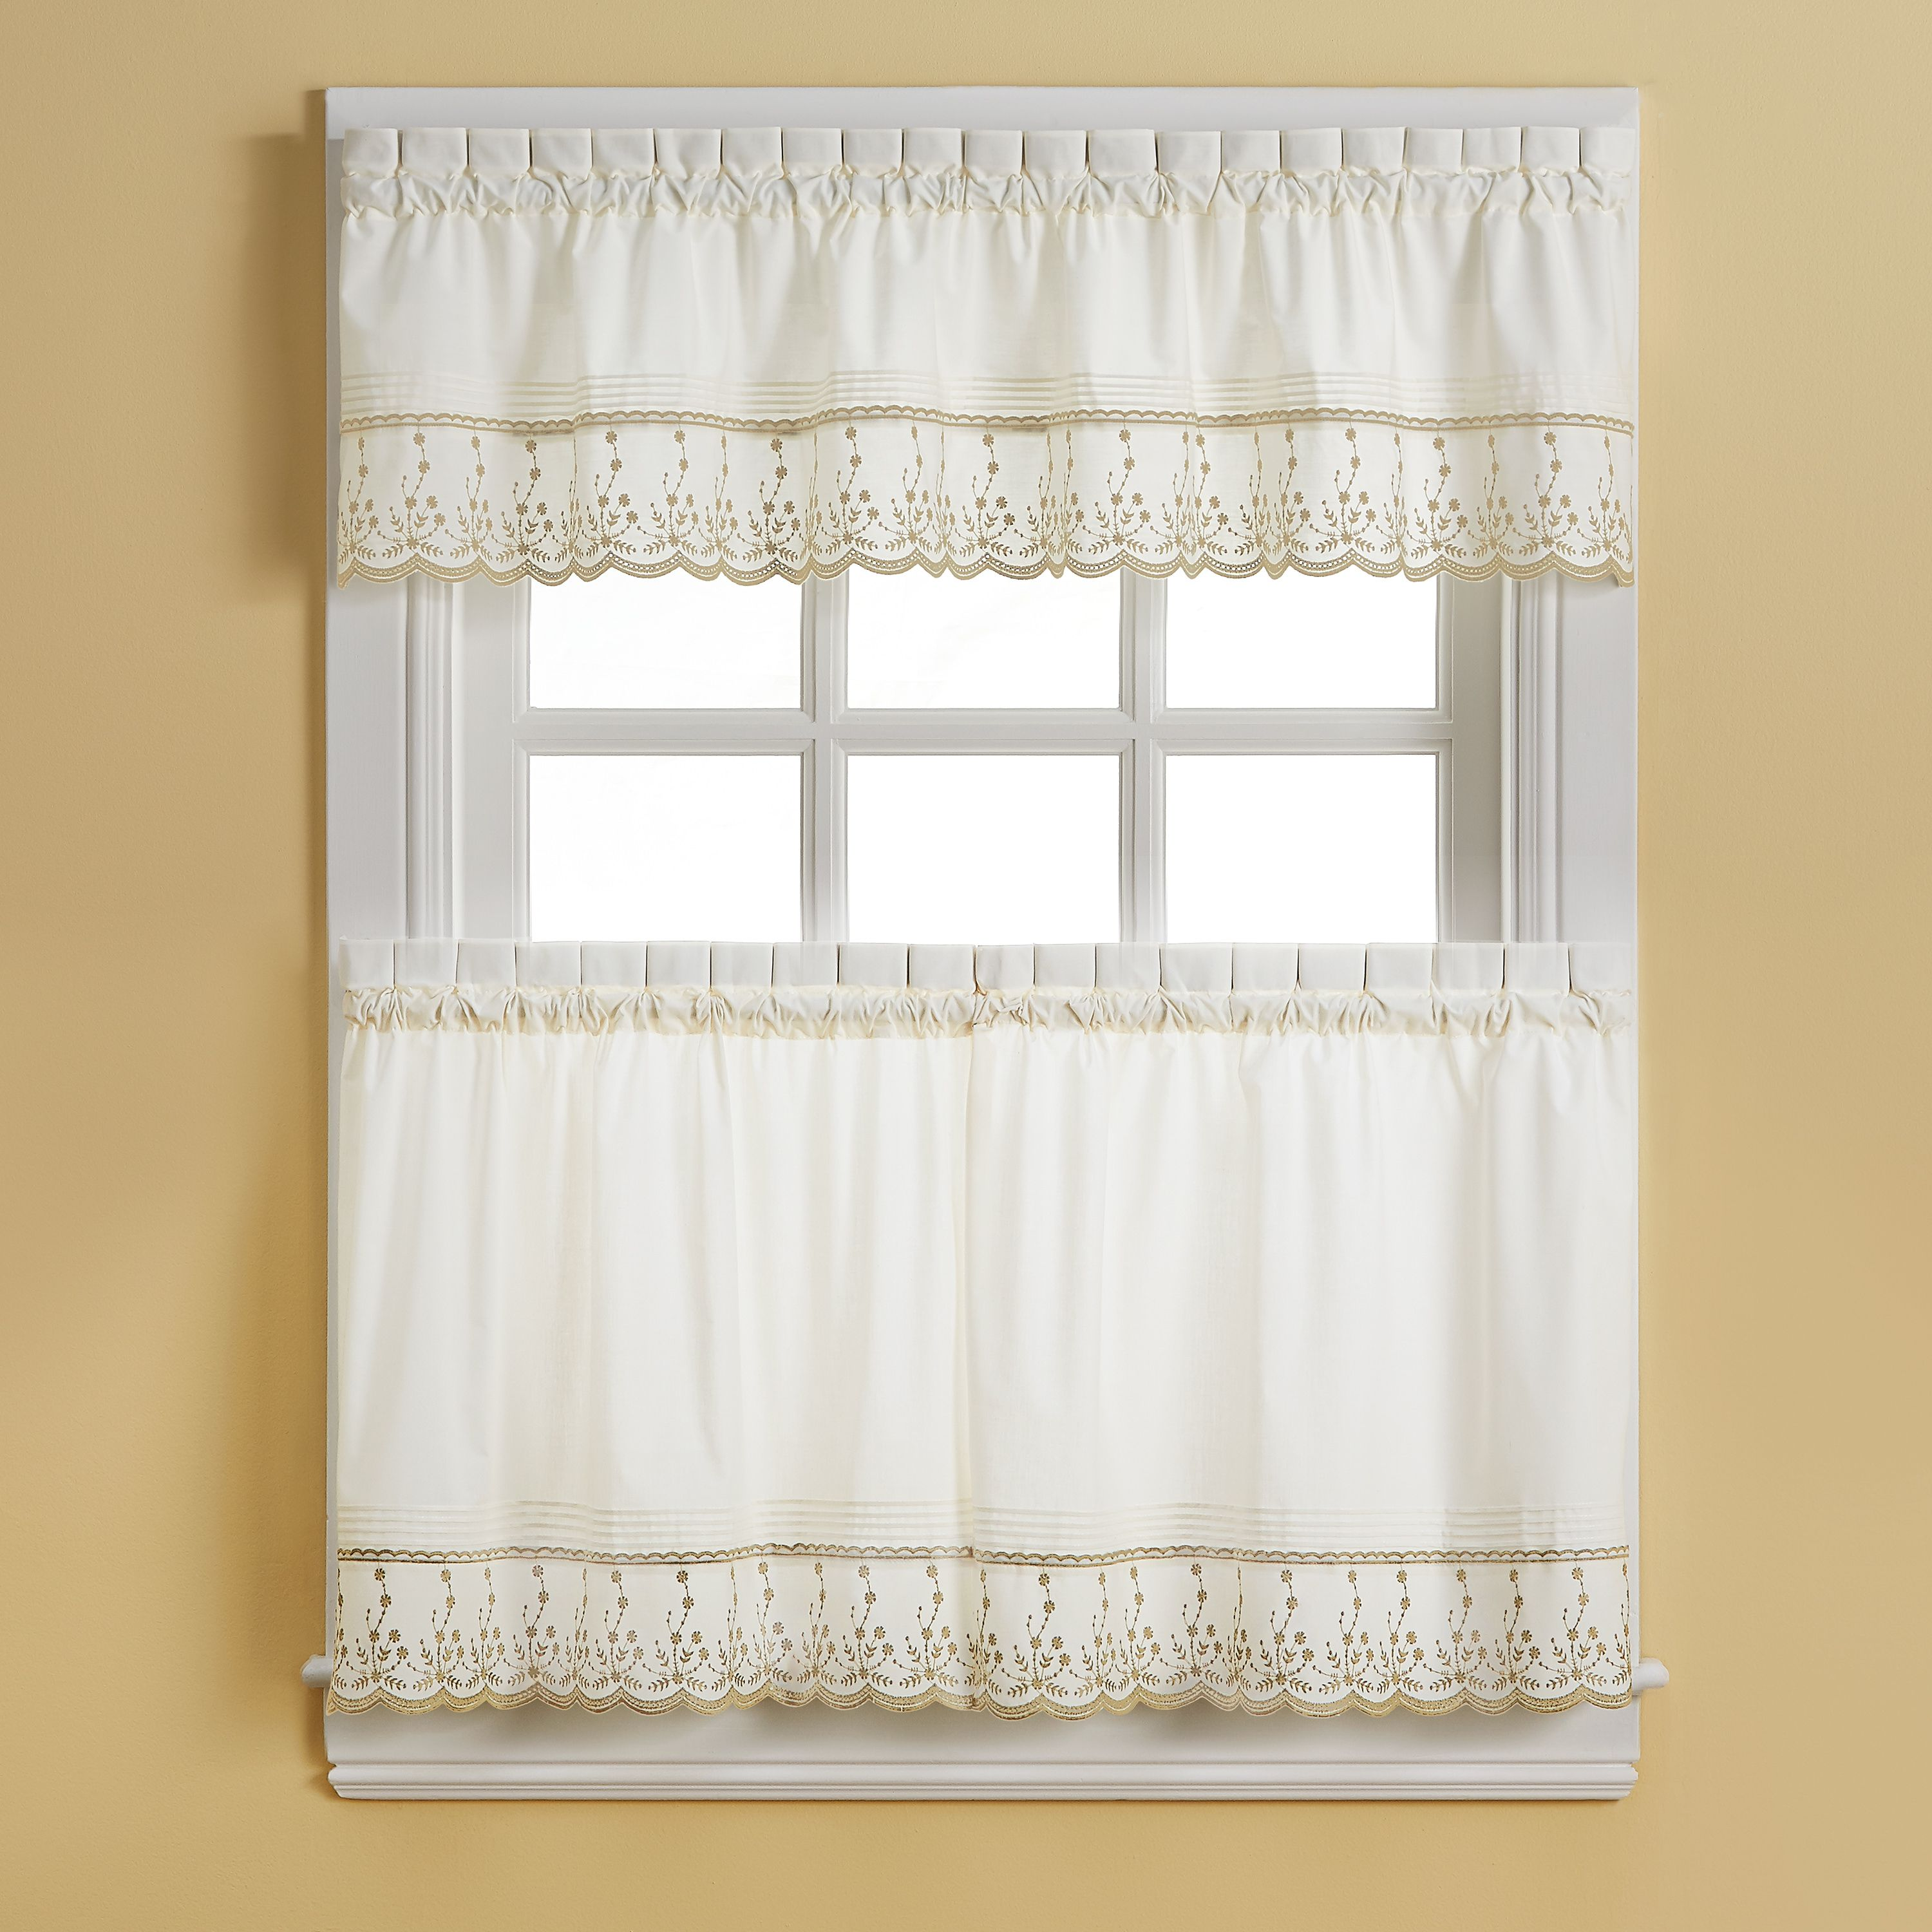 Home Tier Curtains Curtains Valance